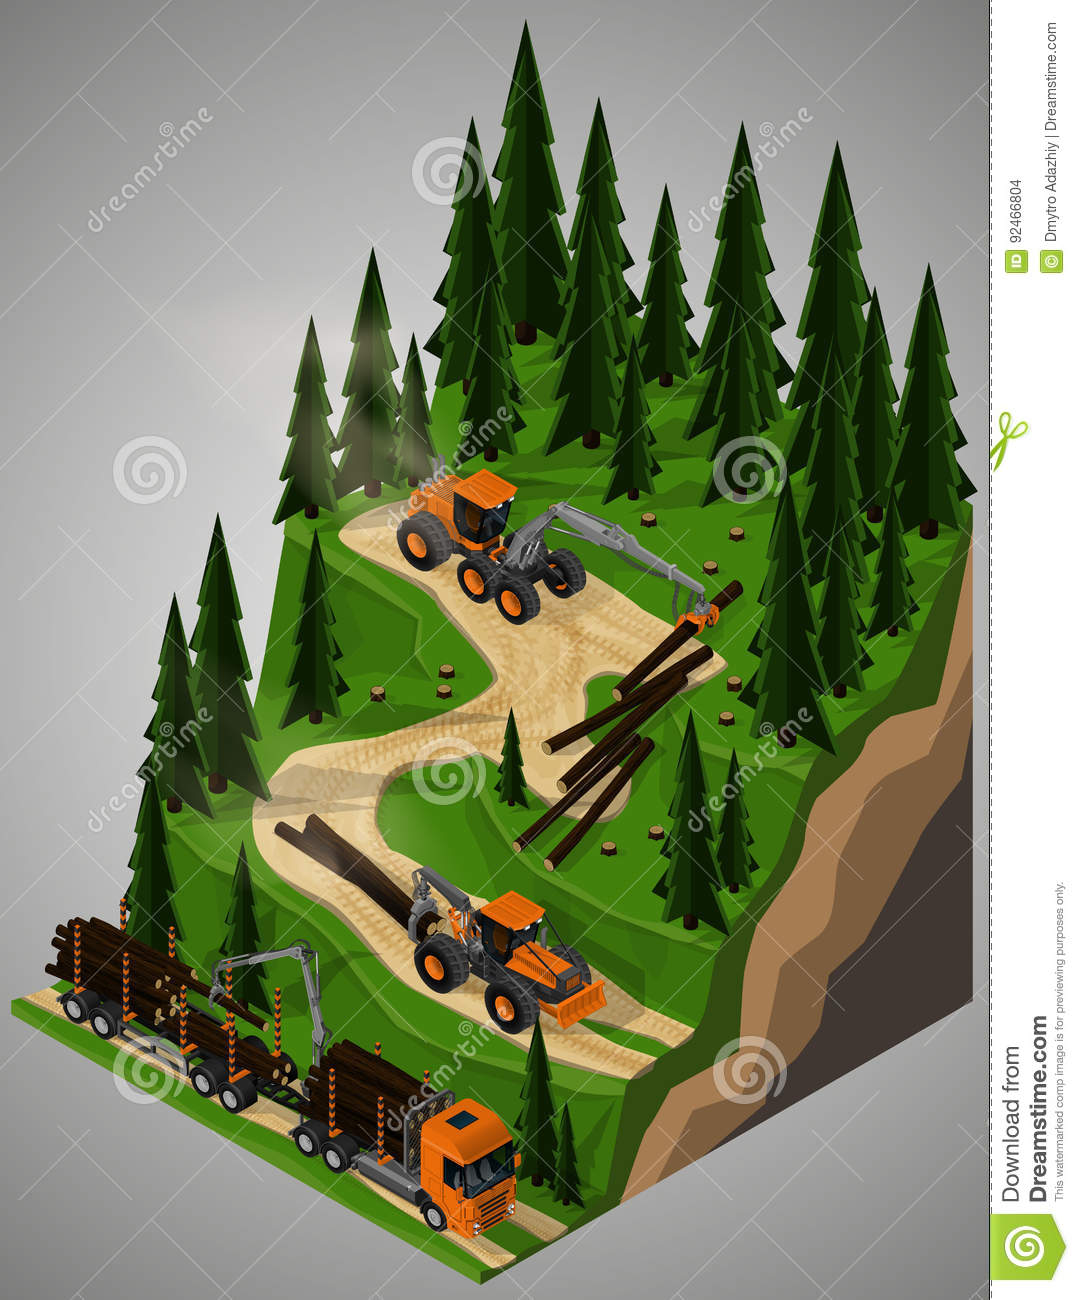 Equipment For Forestry Industry Stock Vector Illustration Of